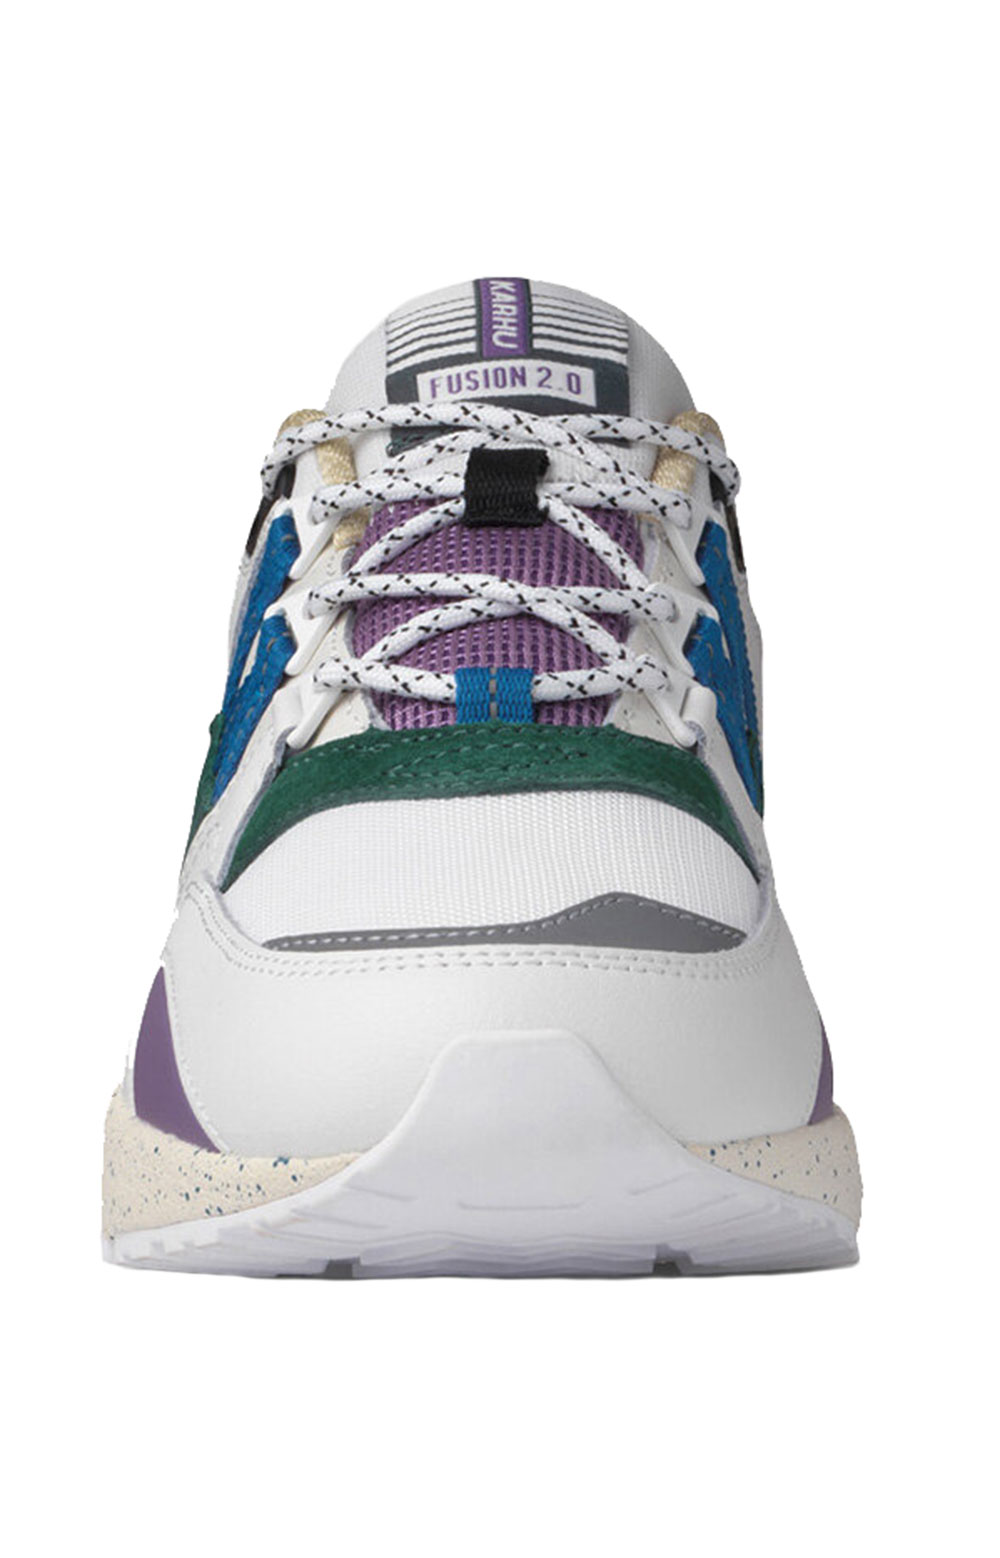 (F804099) Fusion 2.0 Shoes - Bright White/Blue Spruce  5